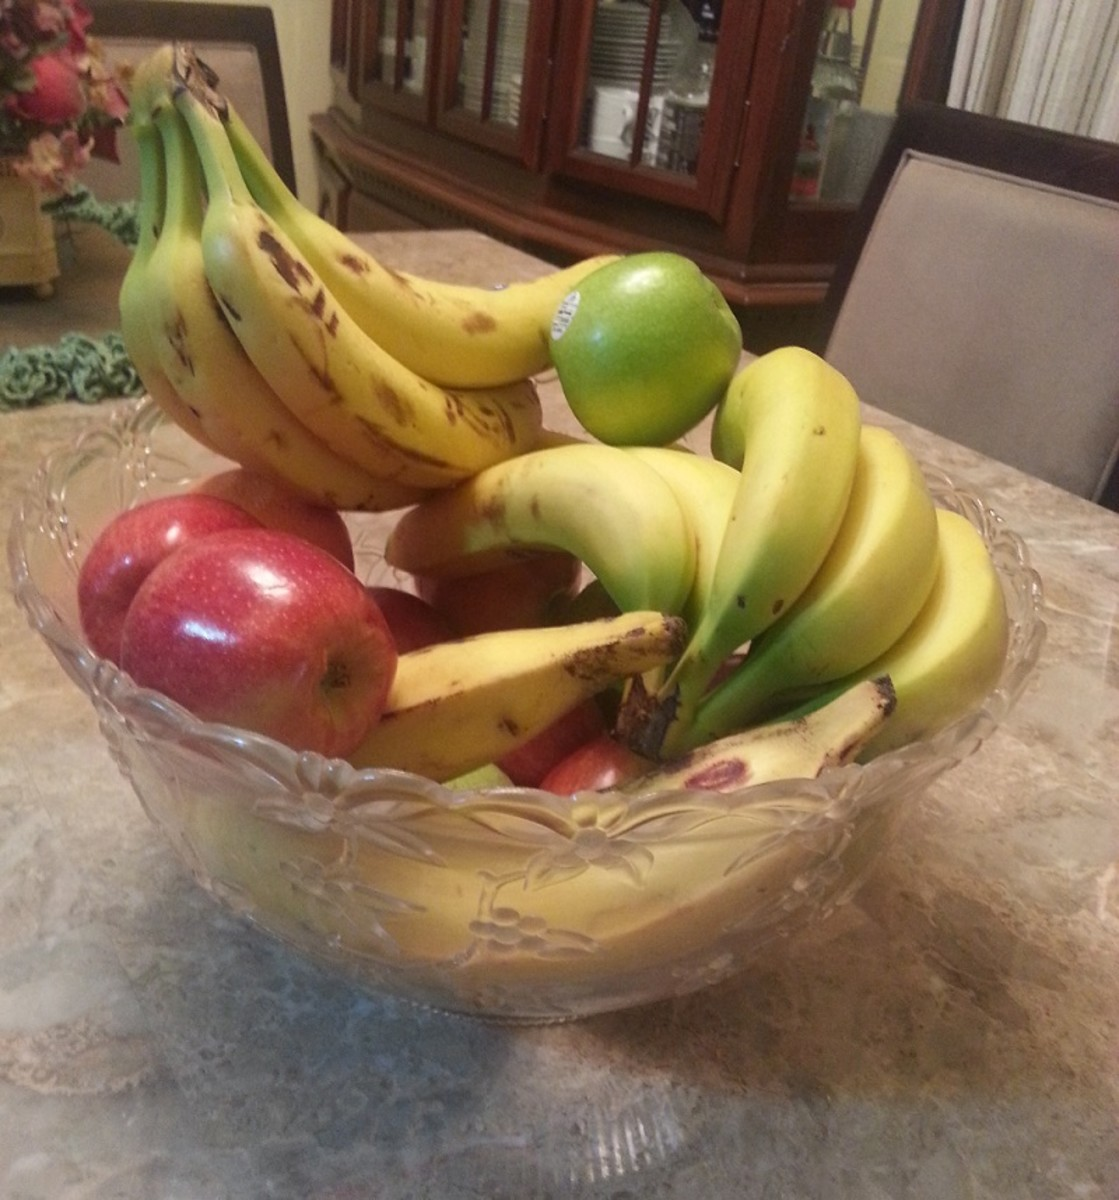 How to Kill Fruit Flies & Protect Your Fruit Bowl